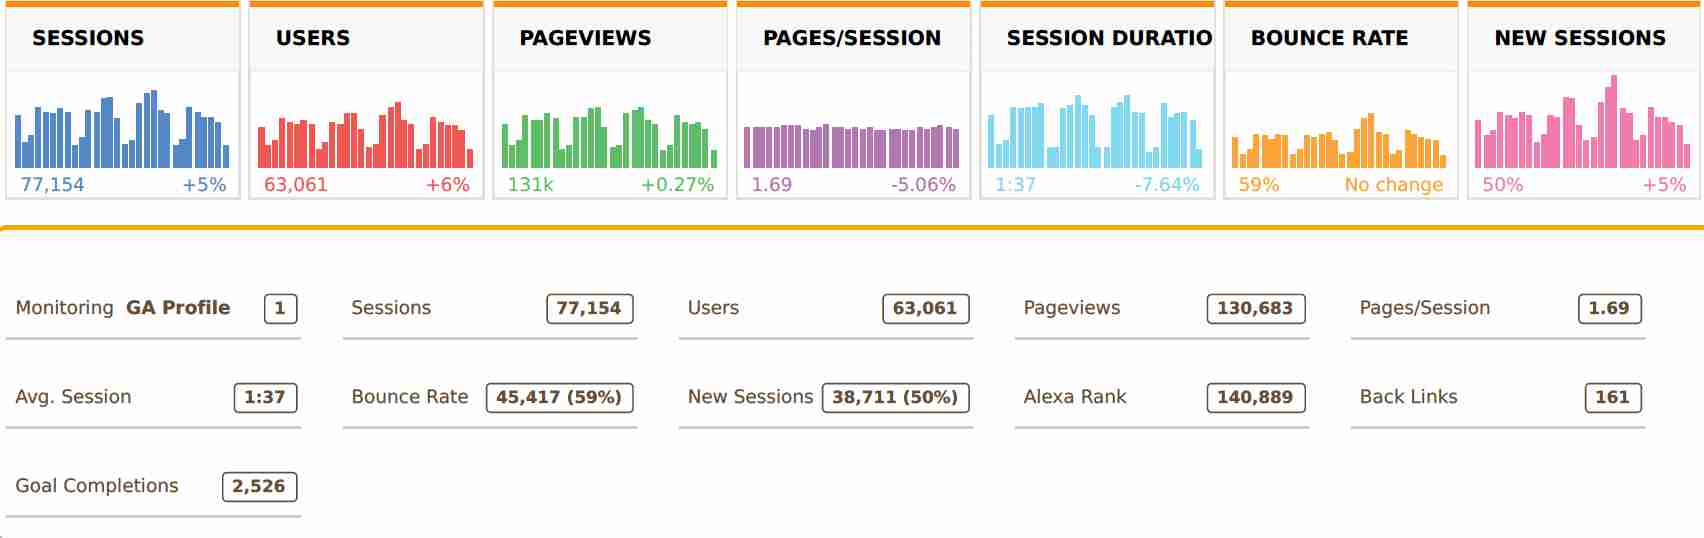 Google Analytics Stats Summary